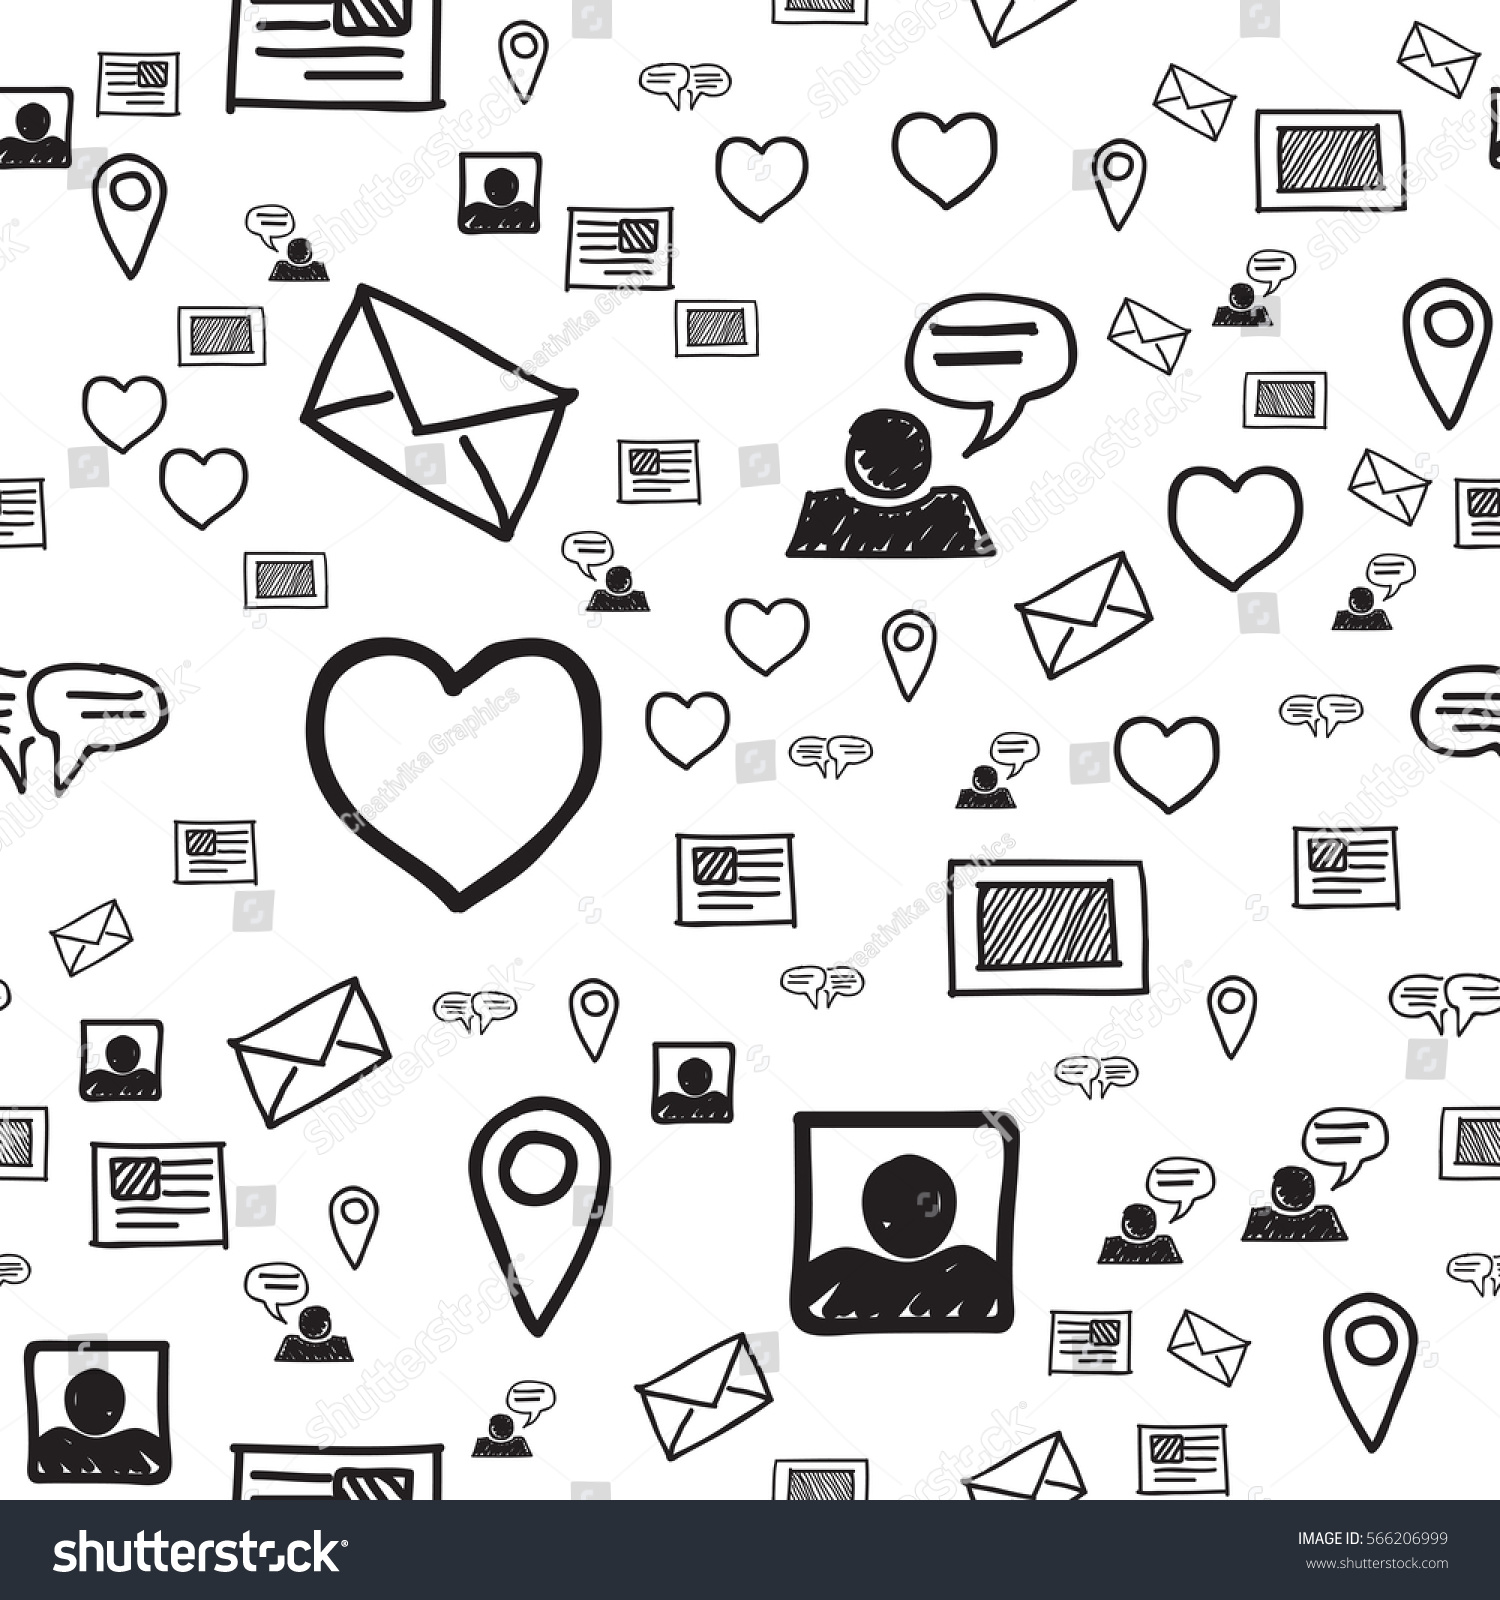 Smart Phone Hearts Love Sms Communications Stock Vector Royalty